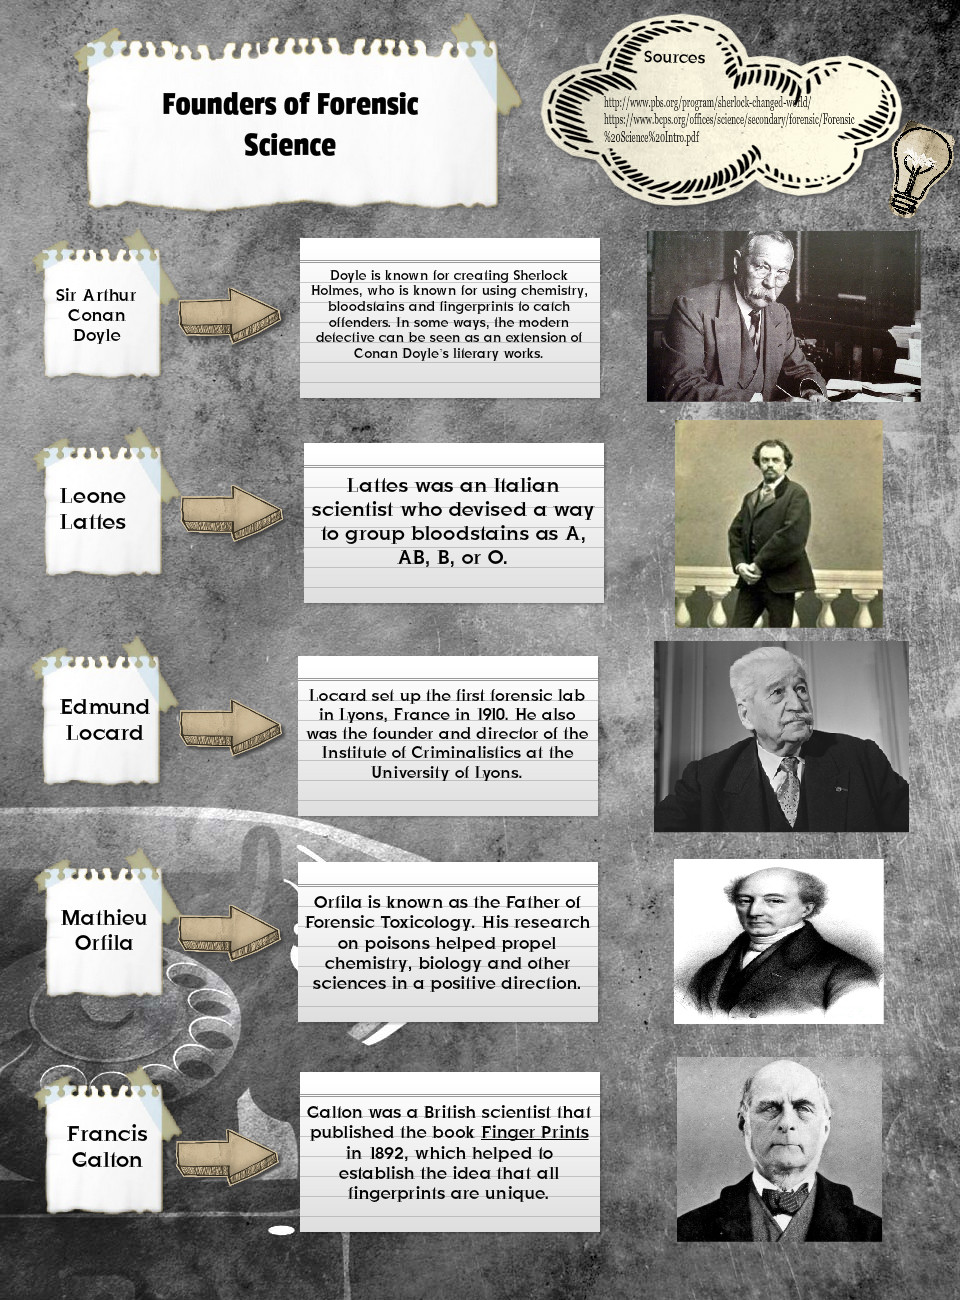 Founders of Forensic Science